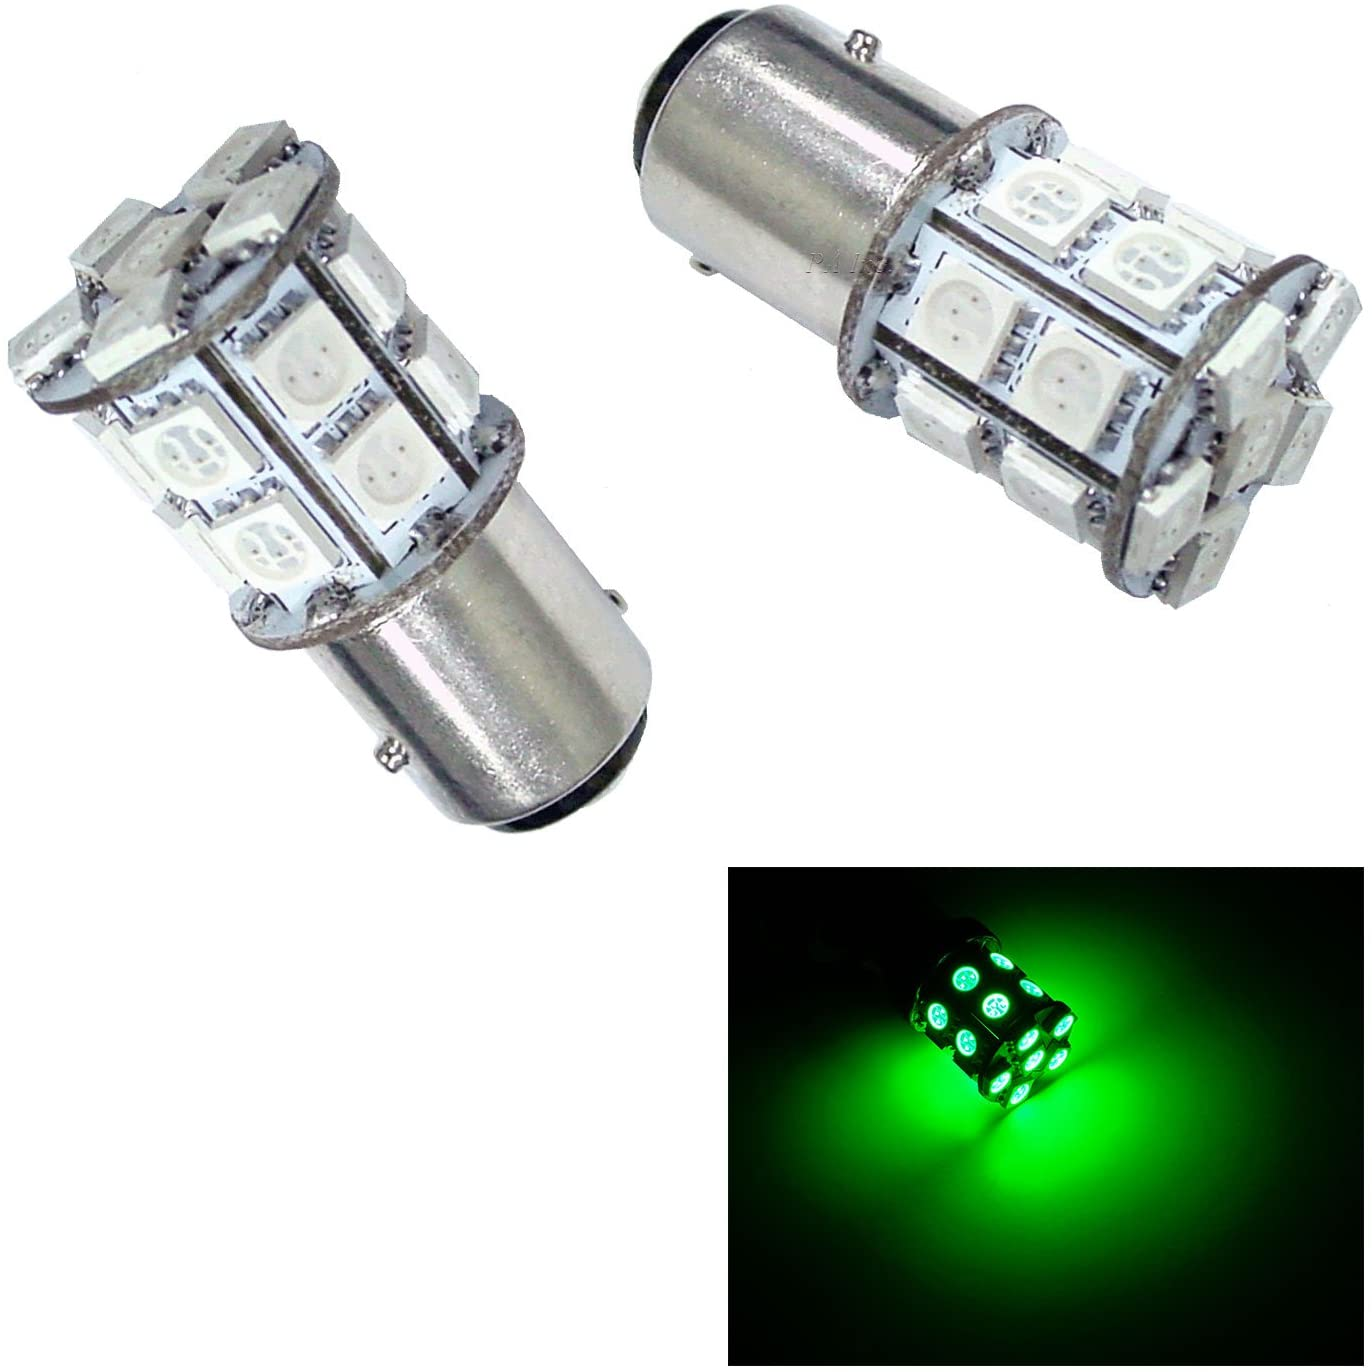 PA 2pcs 20 SMD AUTO Turn Signal Light/Side Marker Light/Brake Light Bulbs 12V (BAY15D, Green)